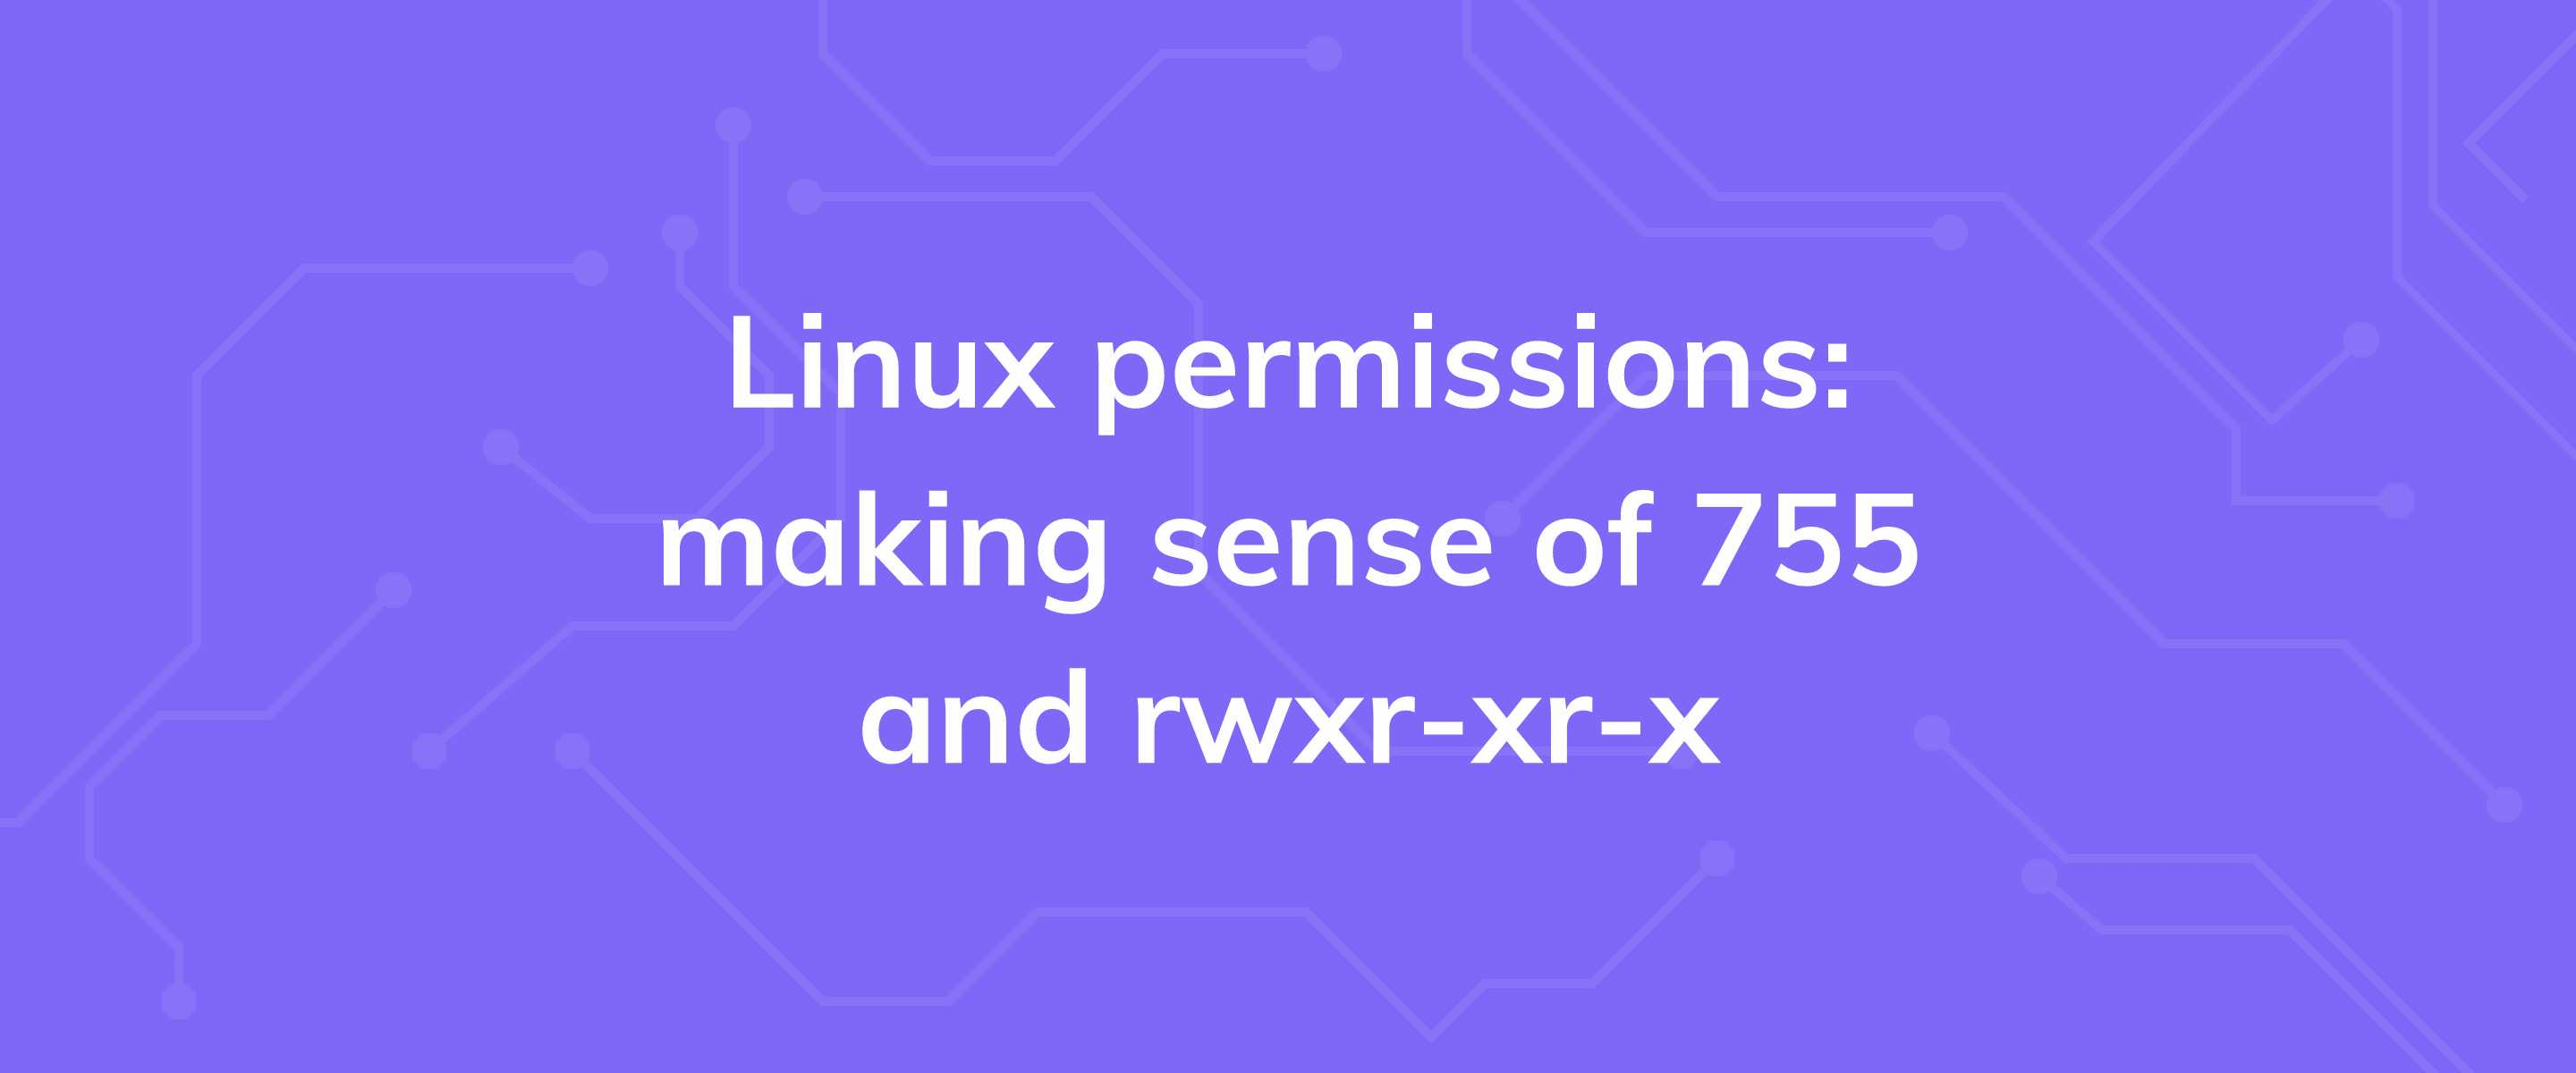 Linux permissions: making sense of 755 and rwxr-xr-x